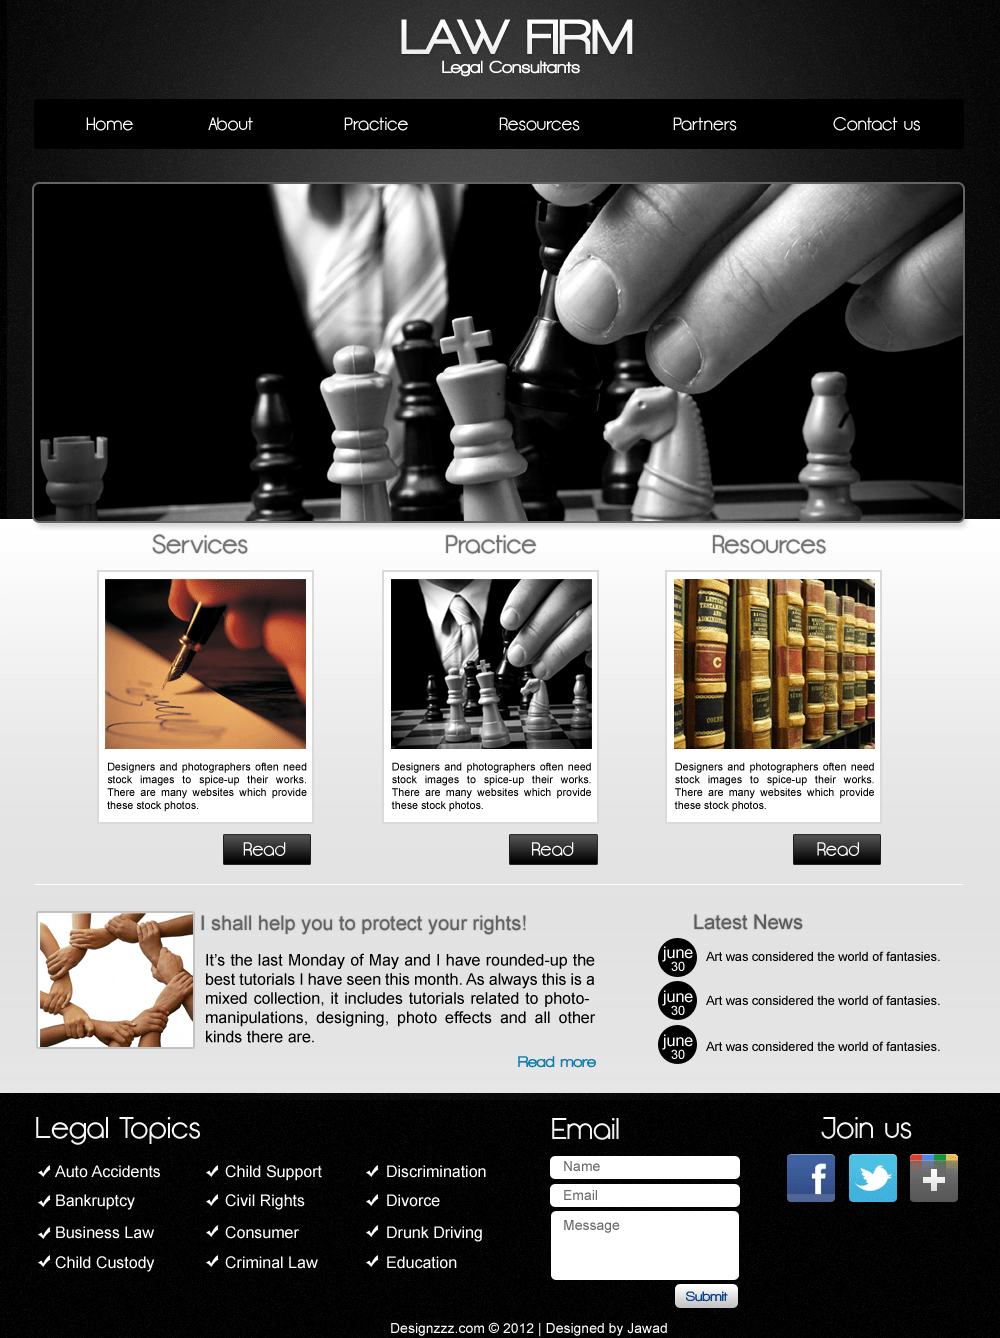 PSD Download of Law Firm Web Template